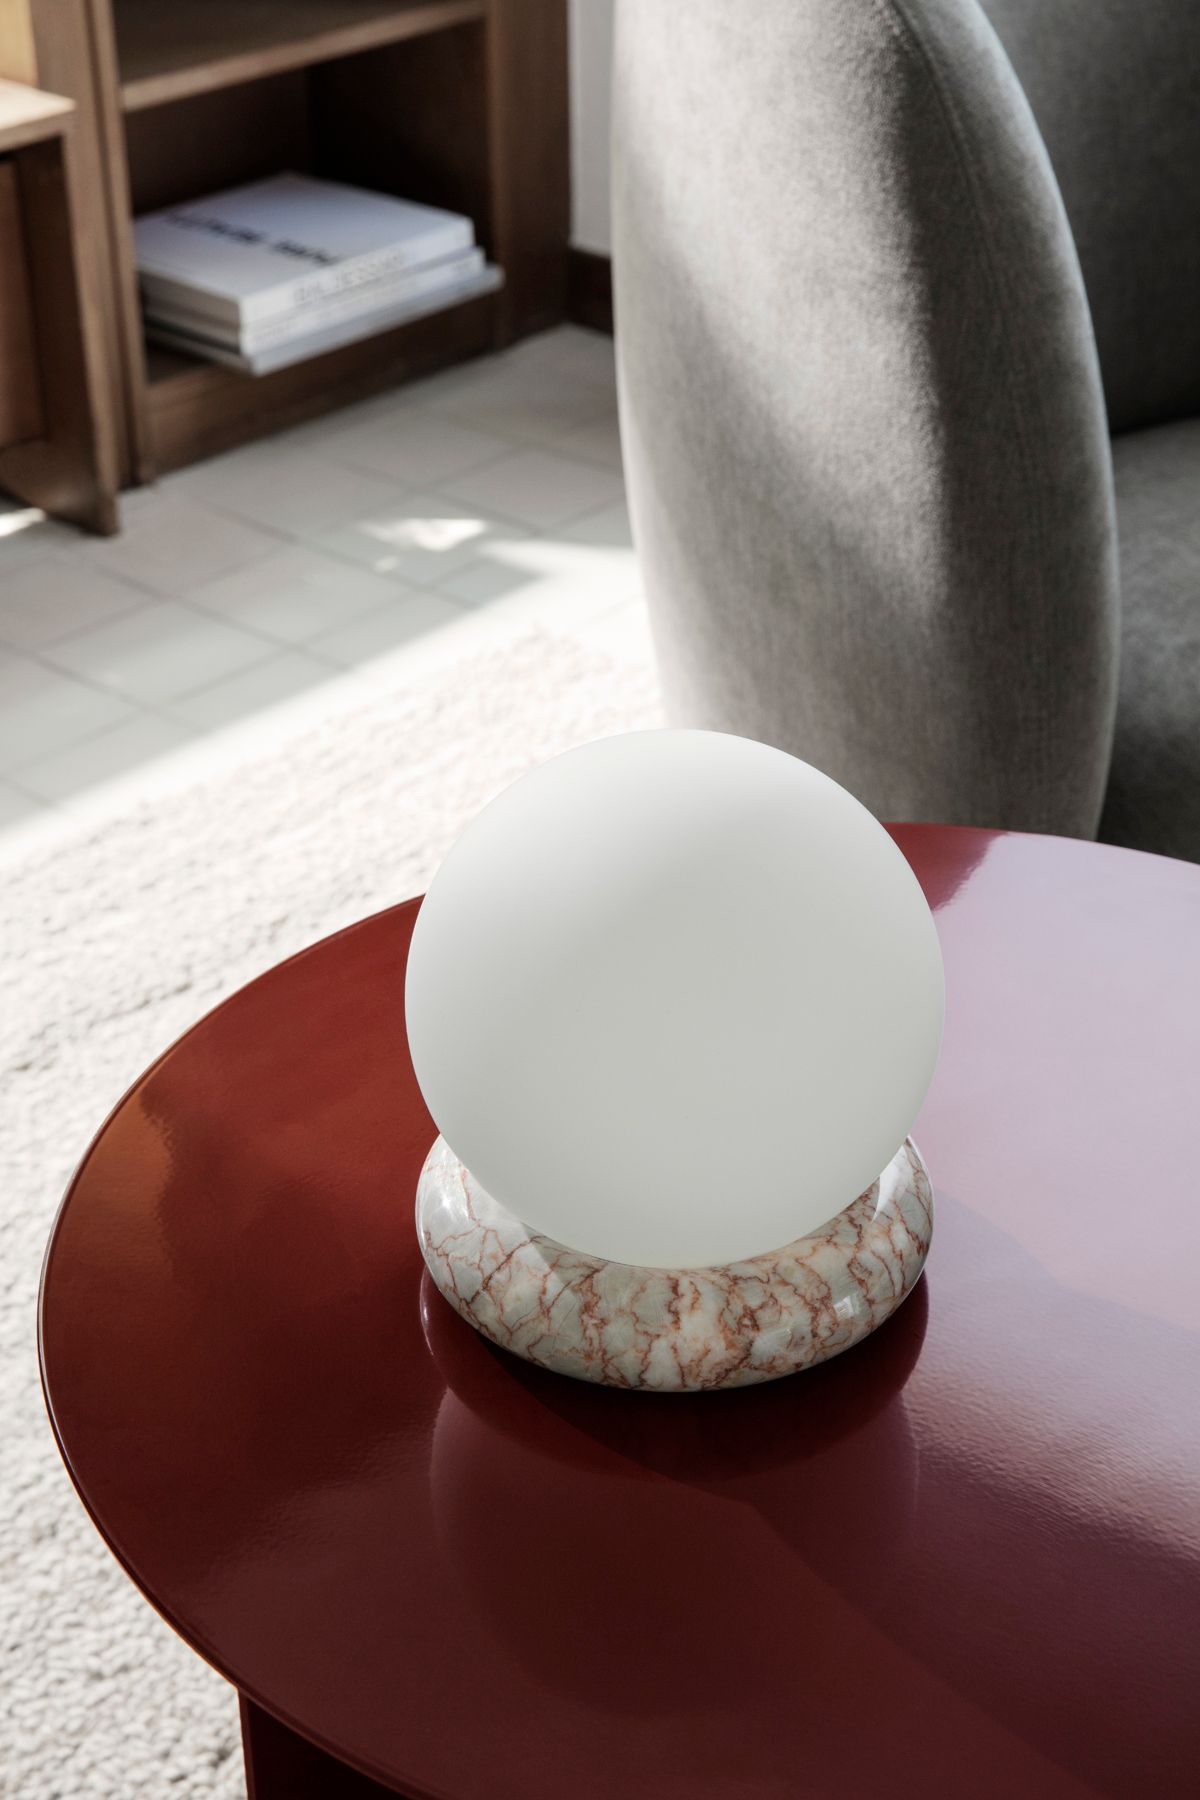 Rest Lamp And Place Side Table By Ferm Living Ferm Living Side Table Design Table Design